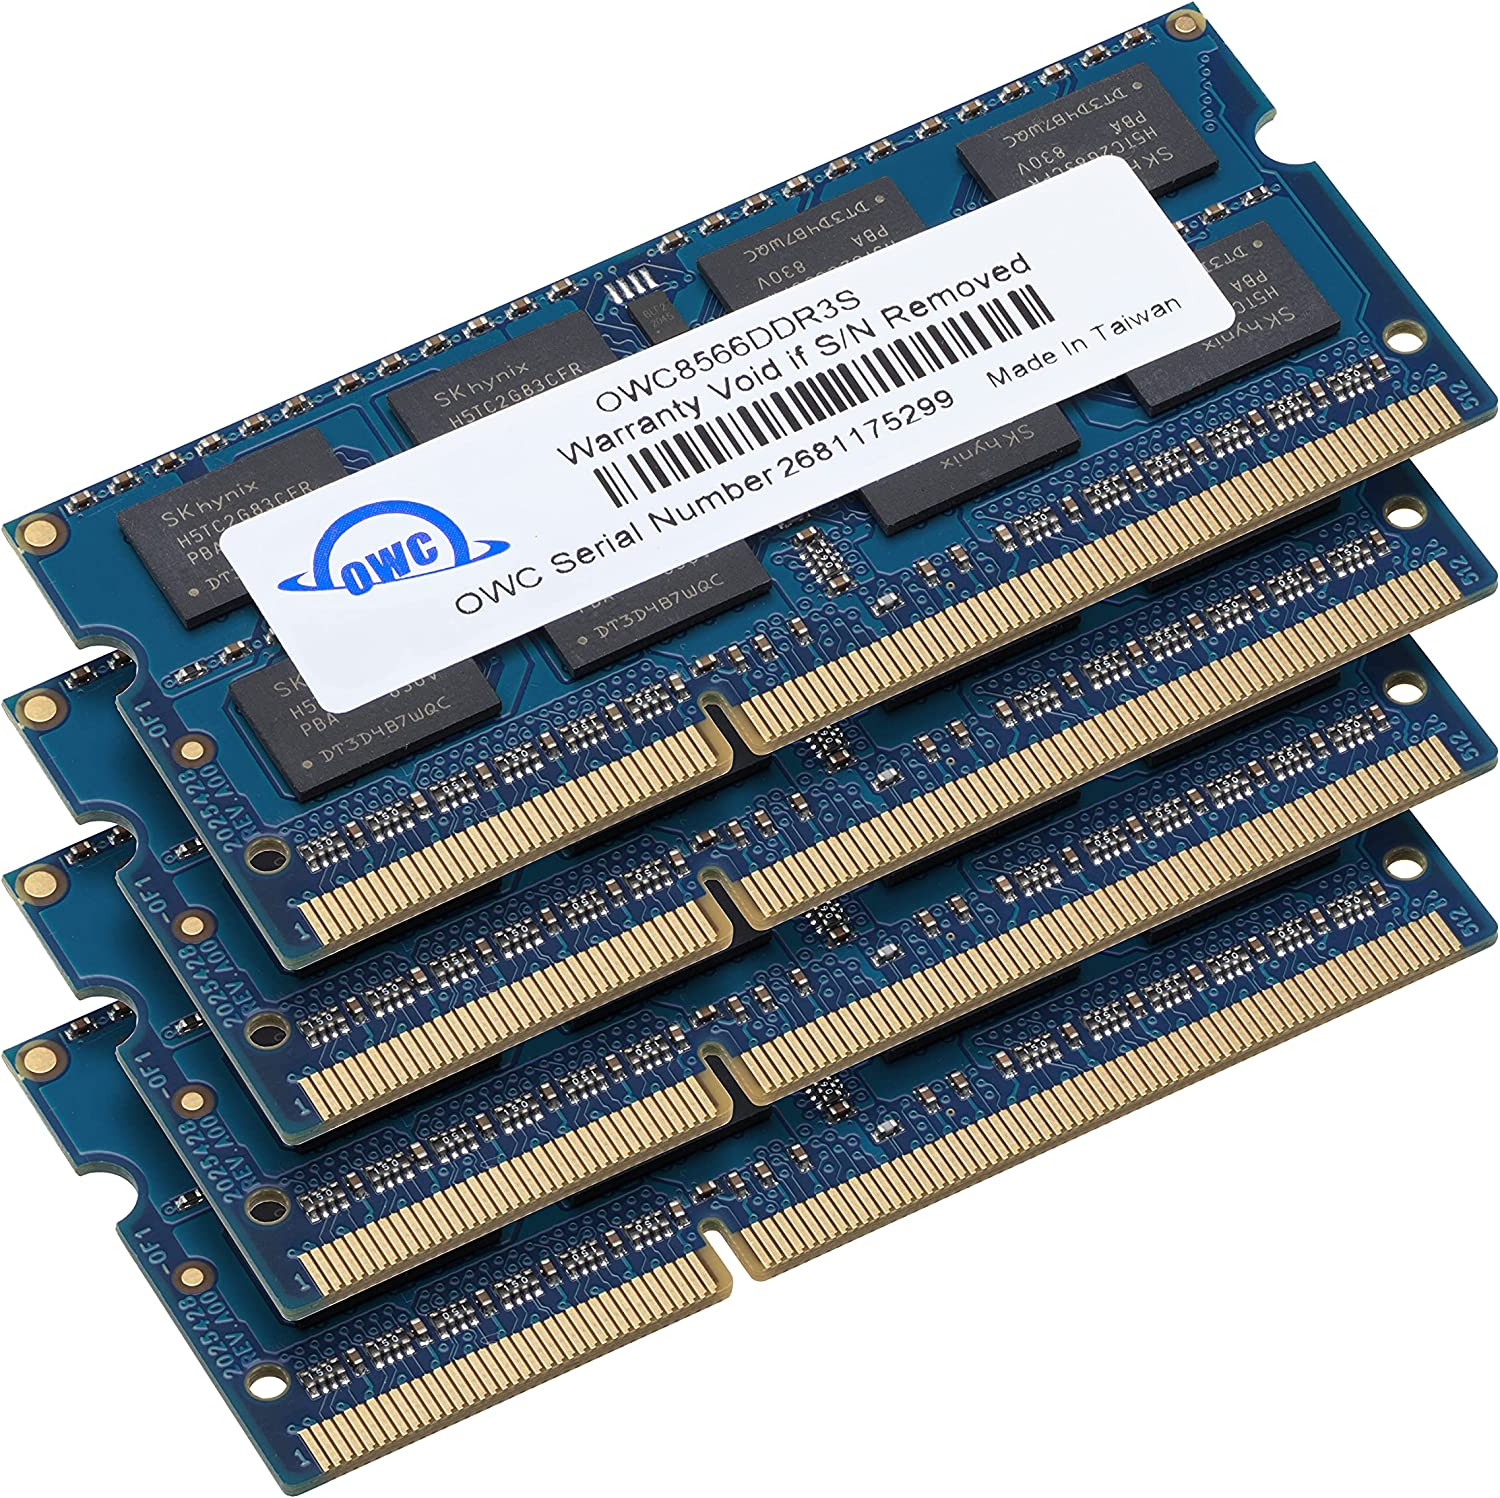 OWC 16.0GB (4 x 4GB) PC8500 DDR3 ECC 1066 MHz 240 pin DIMM Memory Upgrade Kit for 2009 Mac Pro and Xserve